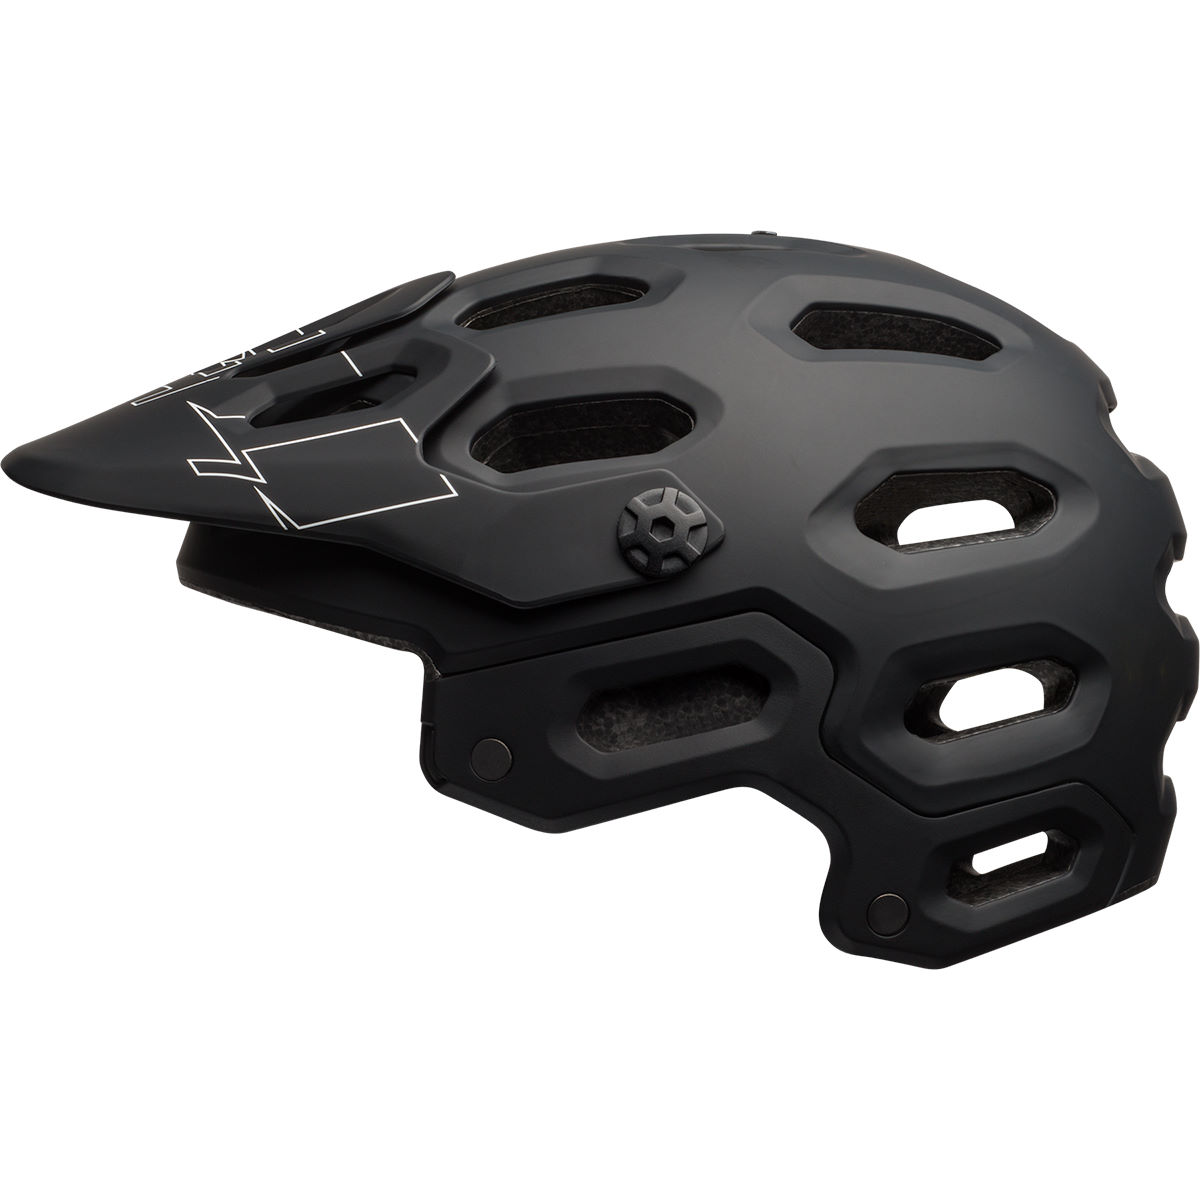 Casque Bell Super 3 - L Matte Black/White Casques VTT